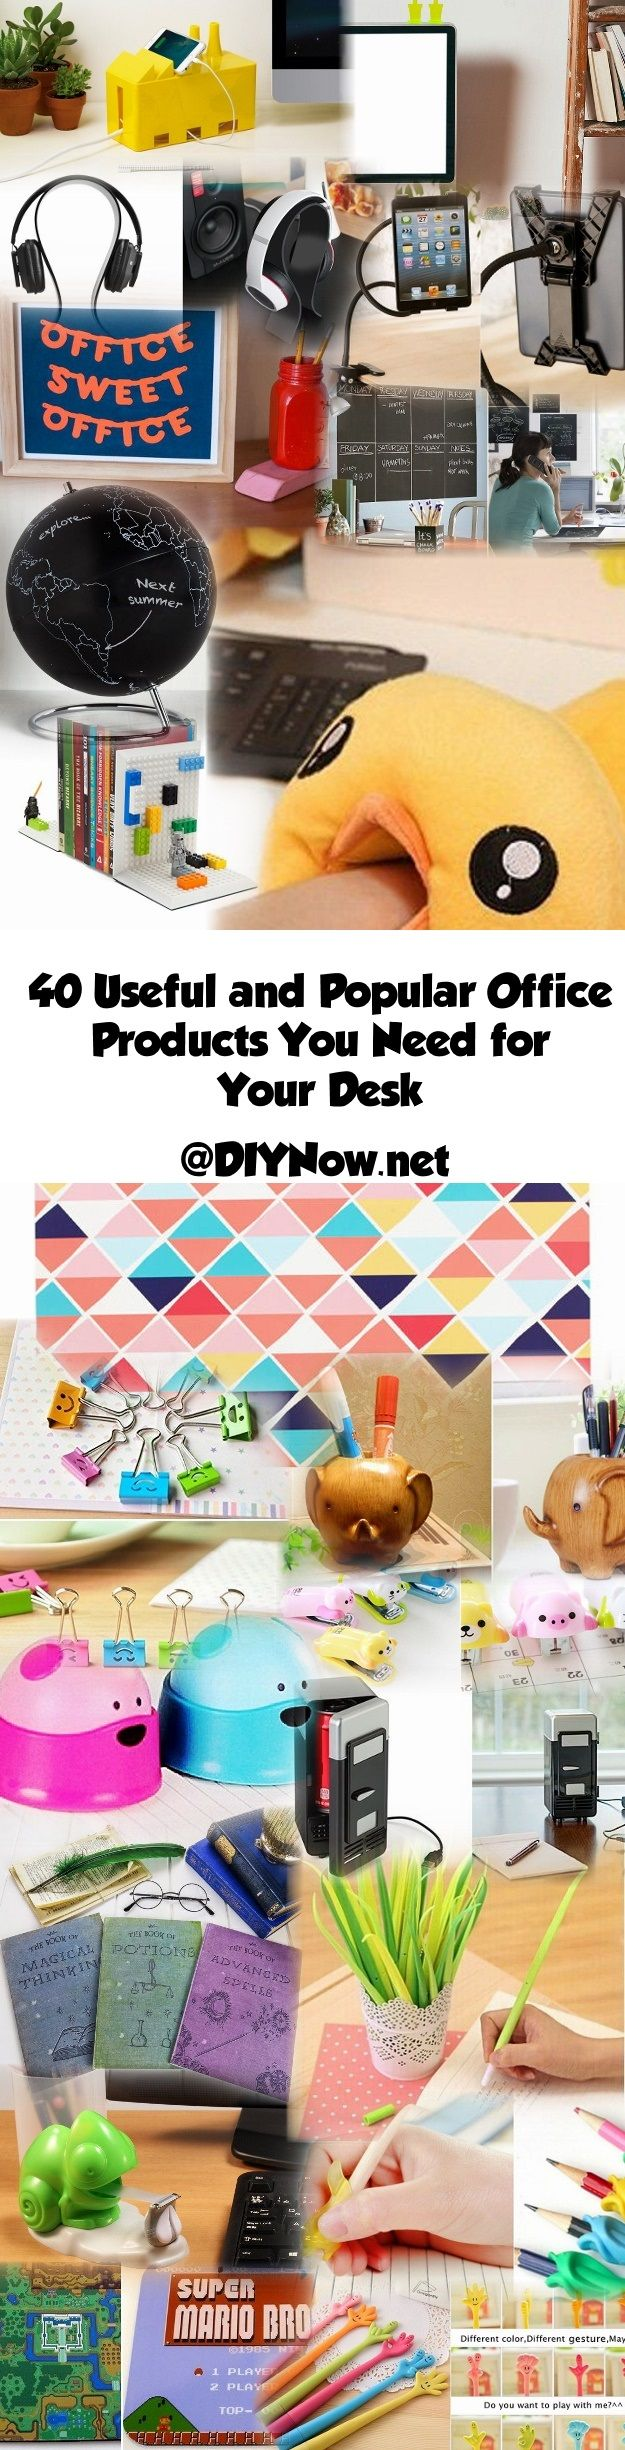 40 Useful and Popular Office Products You Need for Your Desk